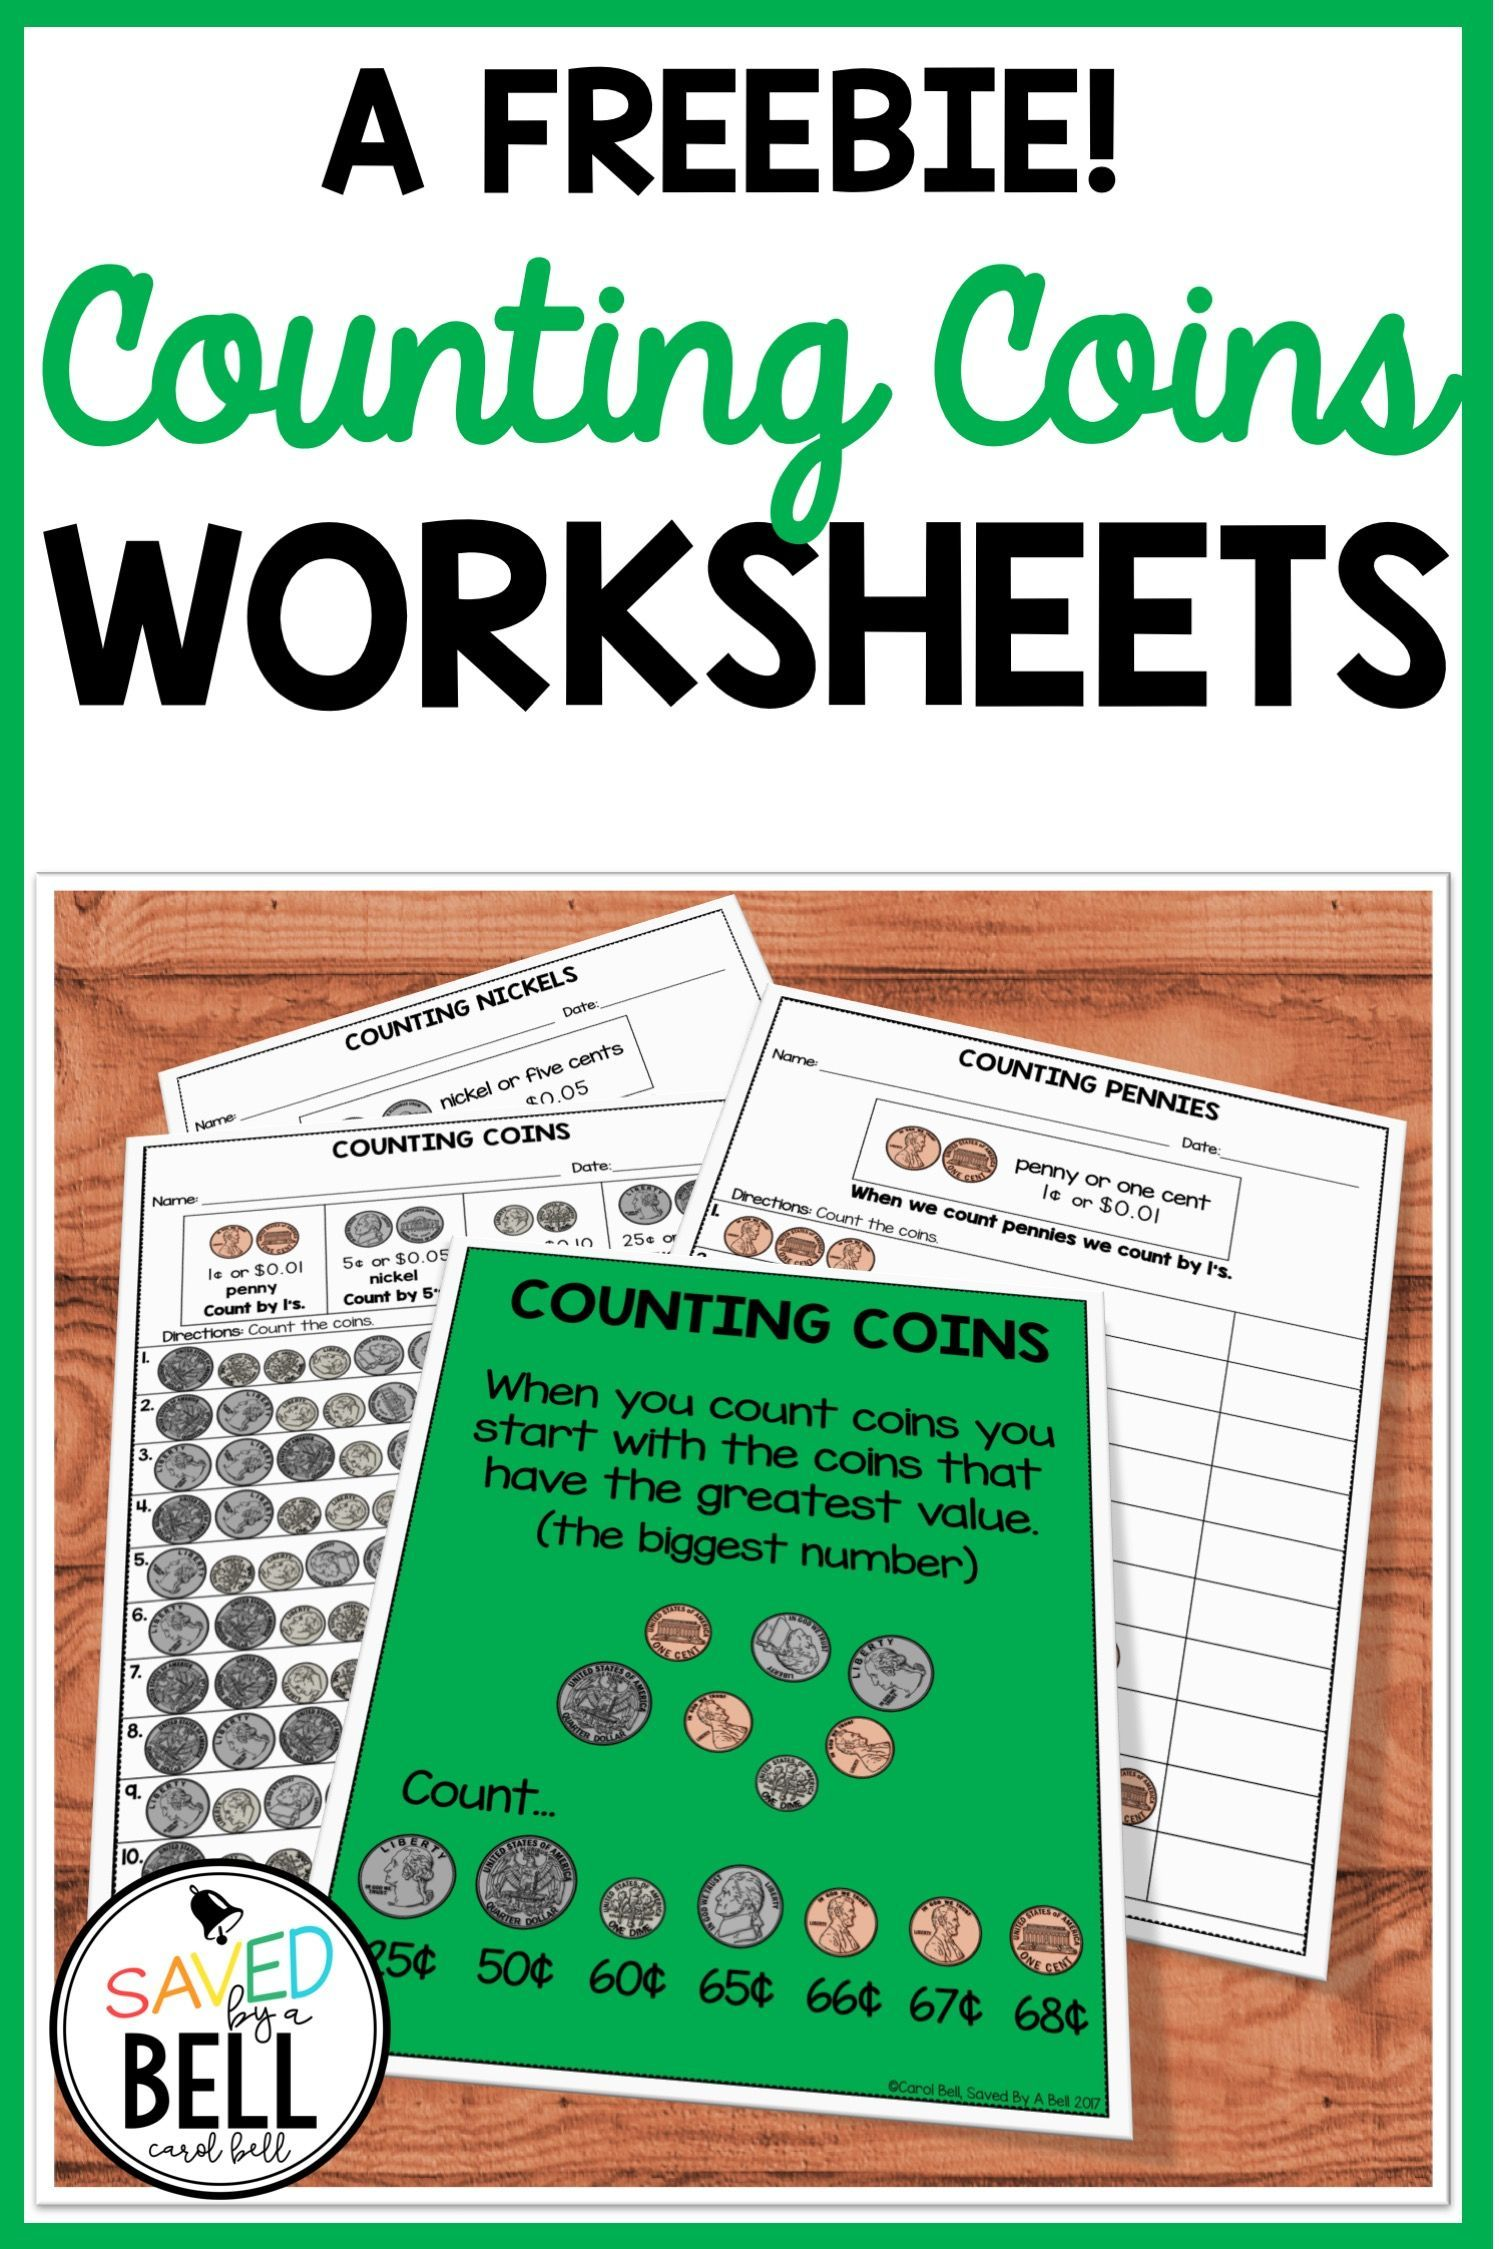 Free Counting Coins Worksheets